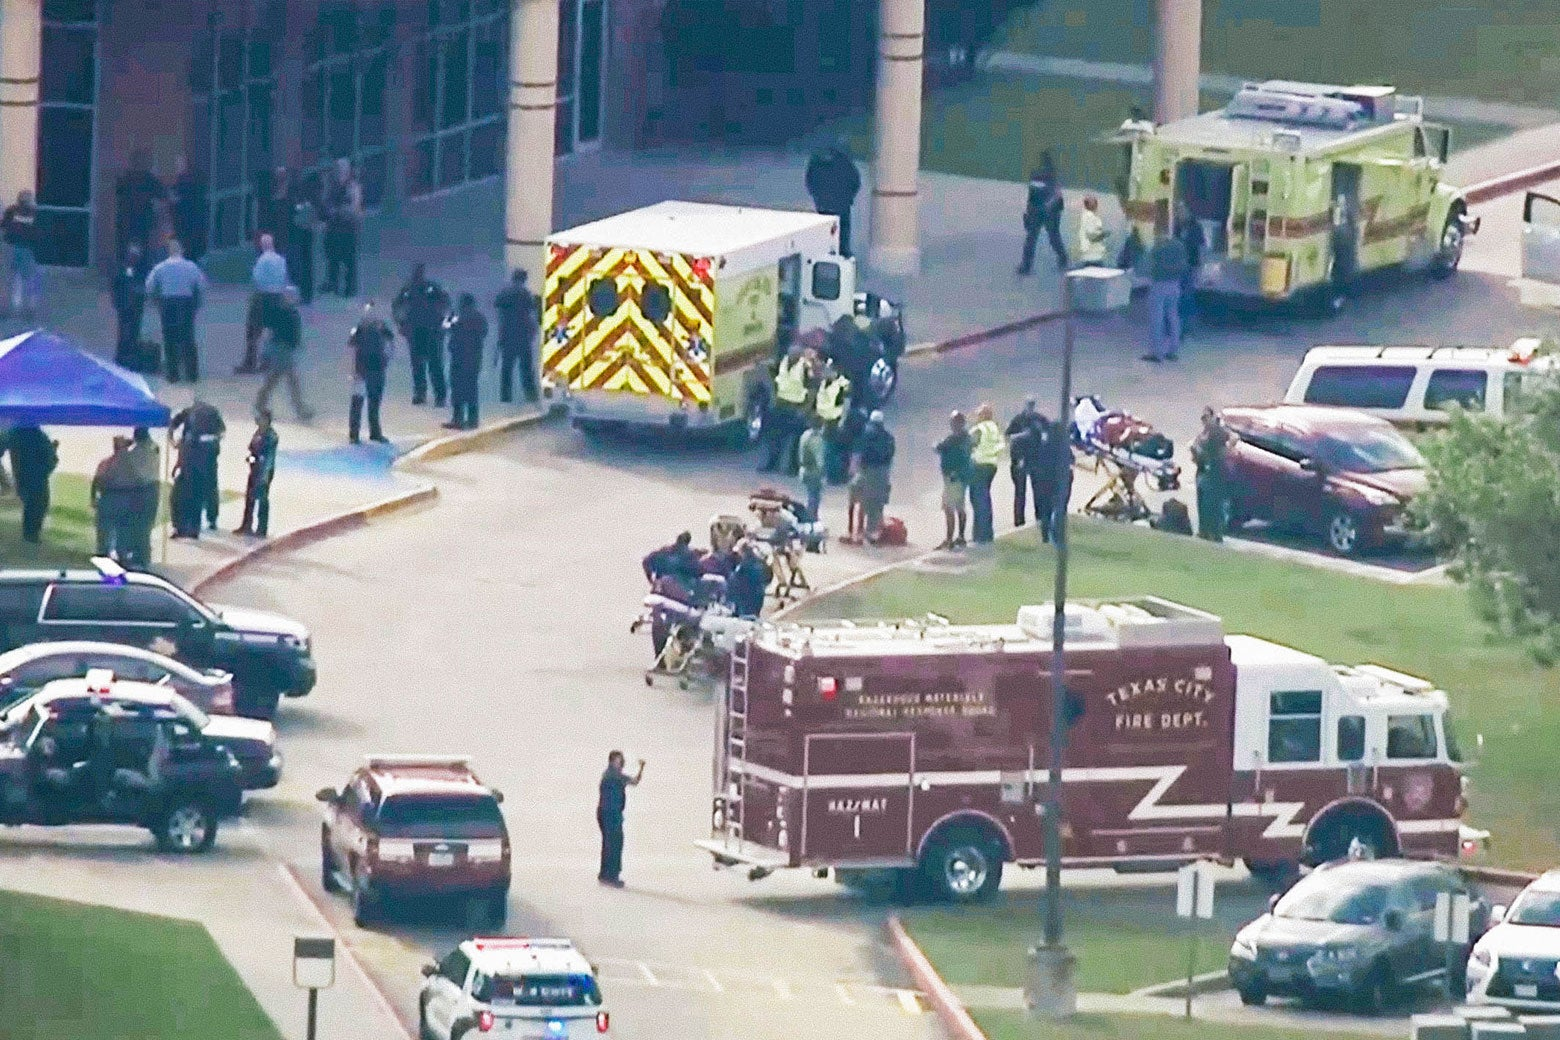 A fire truck, ambulances, and police cars outside a high school as seen from a helicopter.